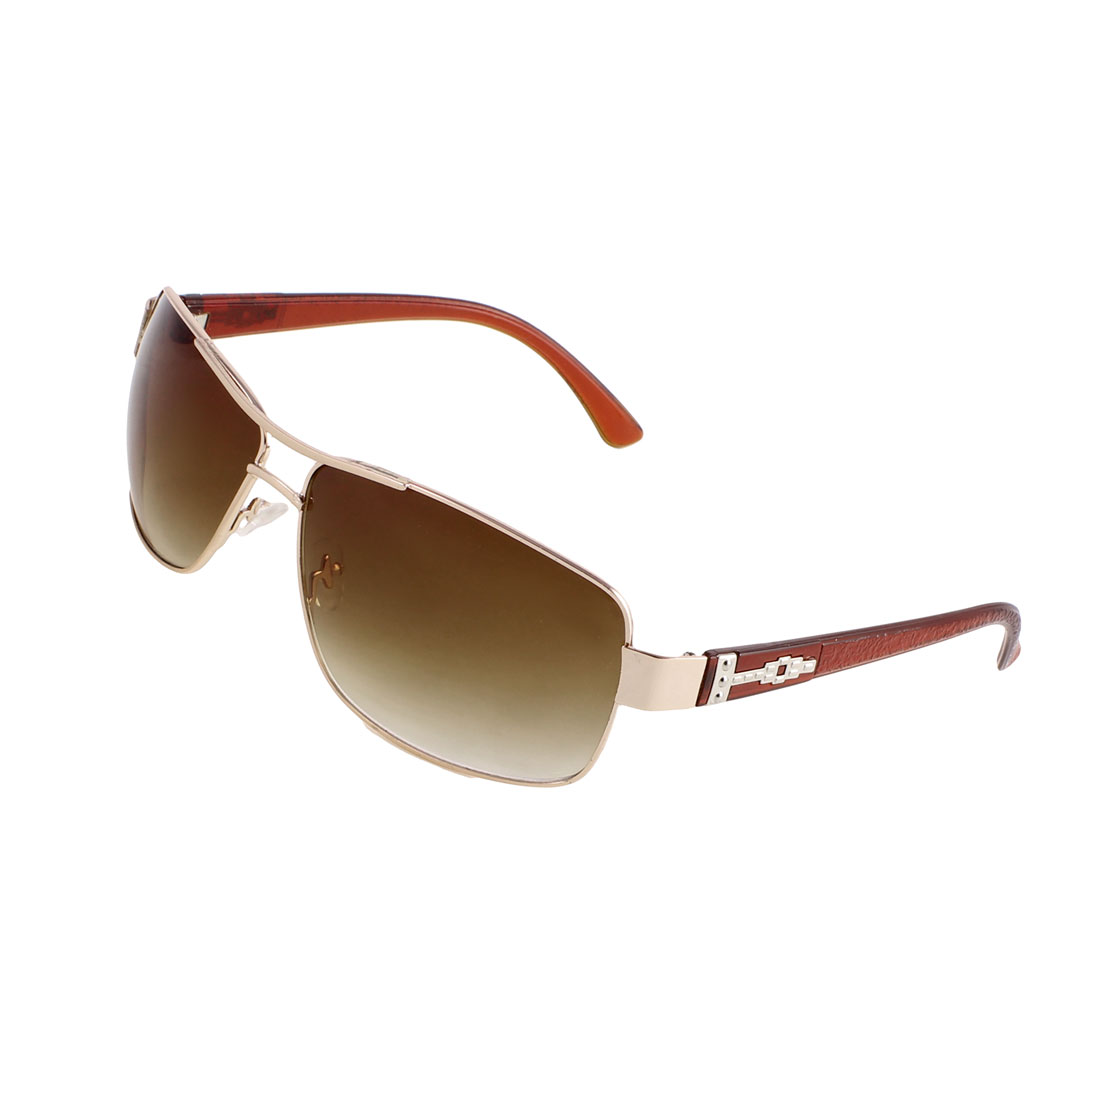 Brown Lens Gold Tone Metal Plastic Rough Arms Protective Sunglasses